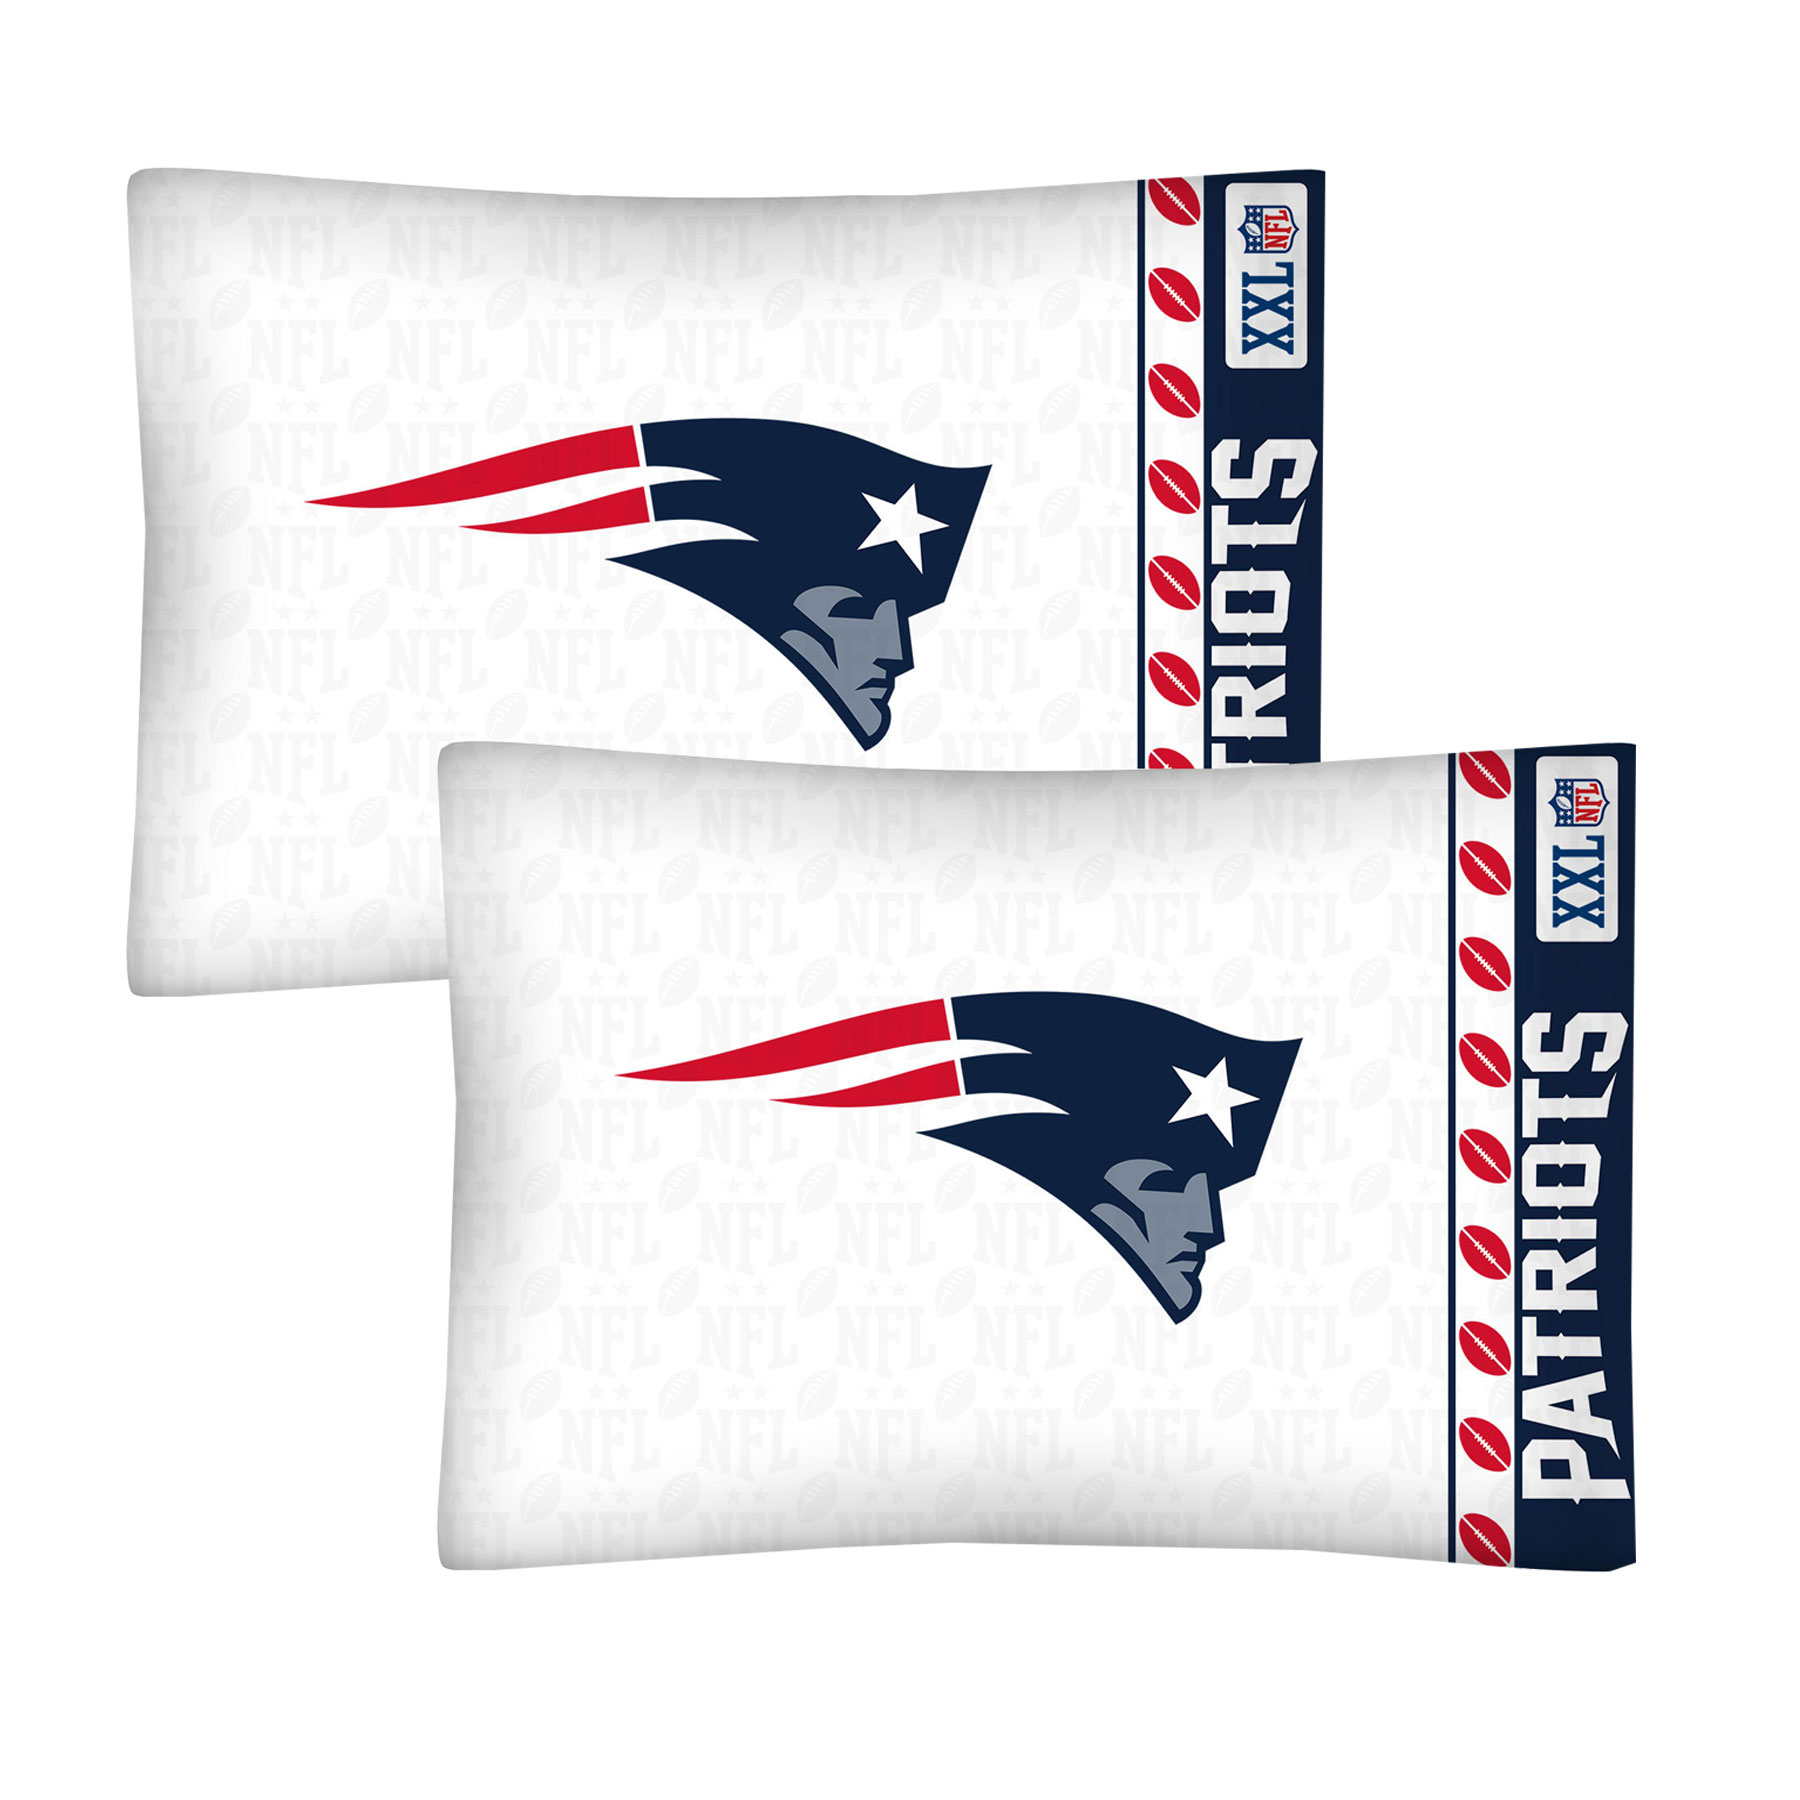 NFL New England Patriots Football Set of Two Pillowcases at Sears.com